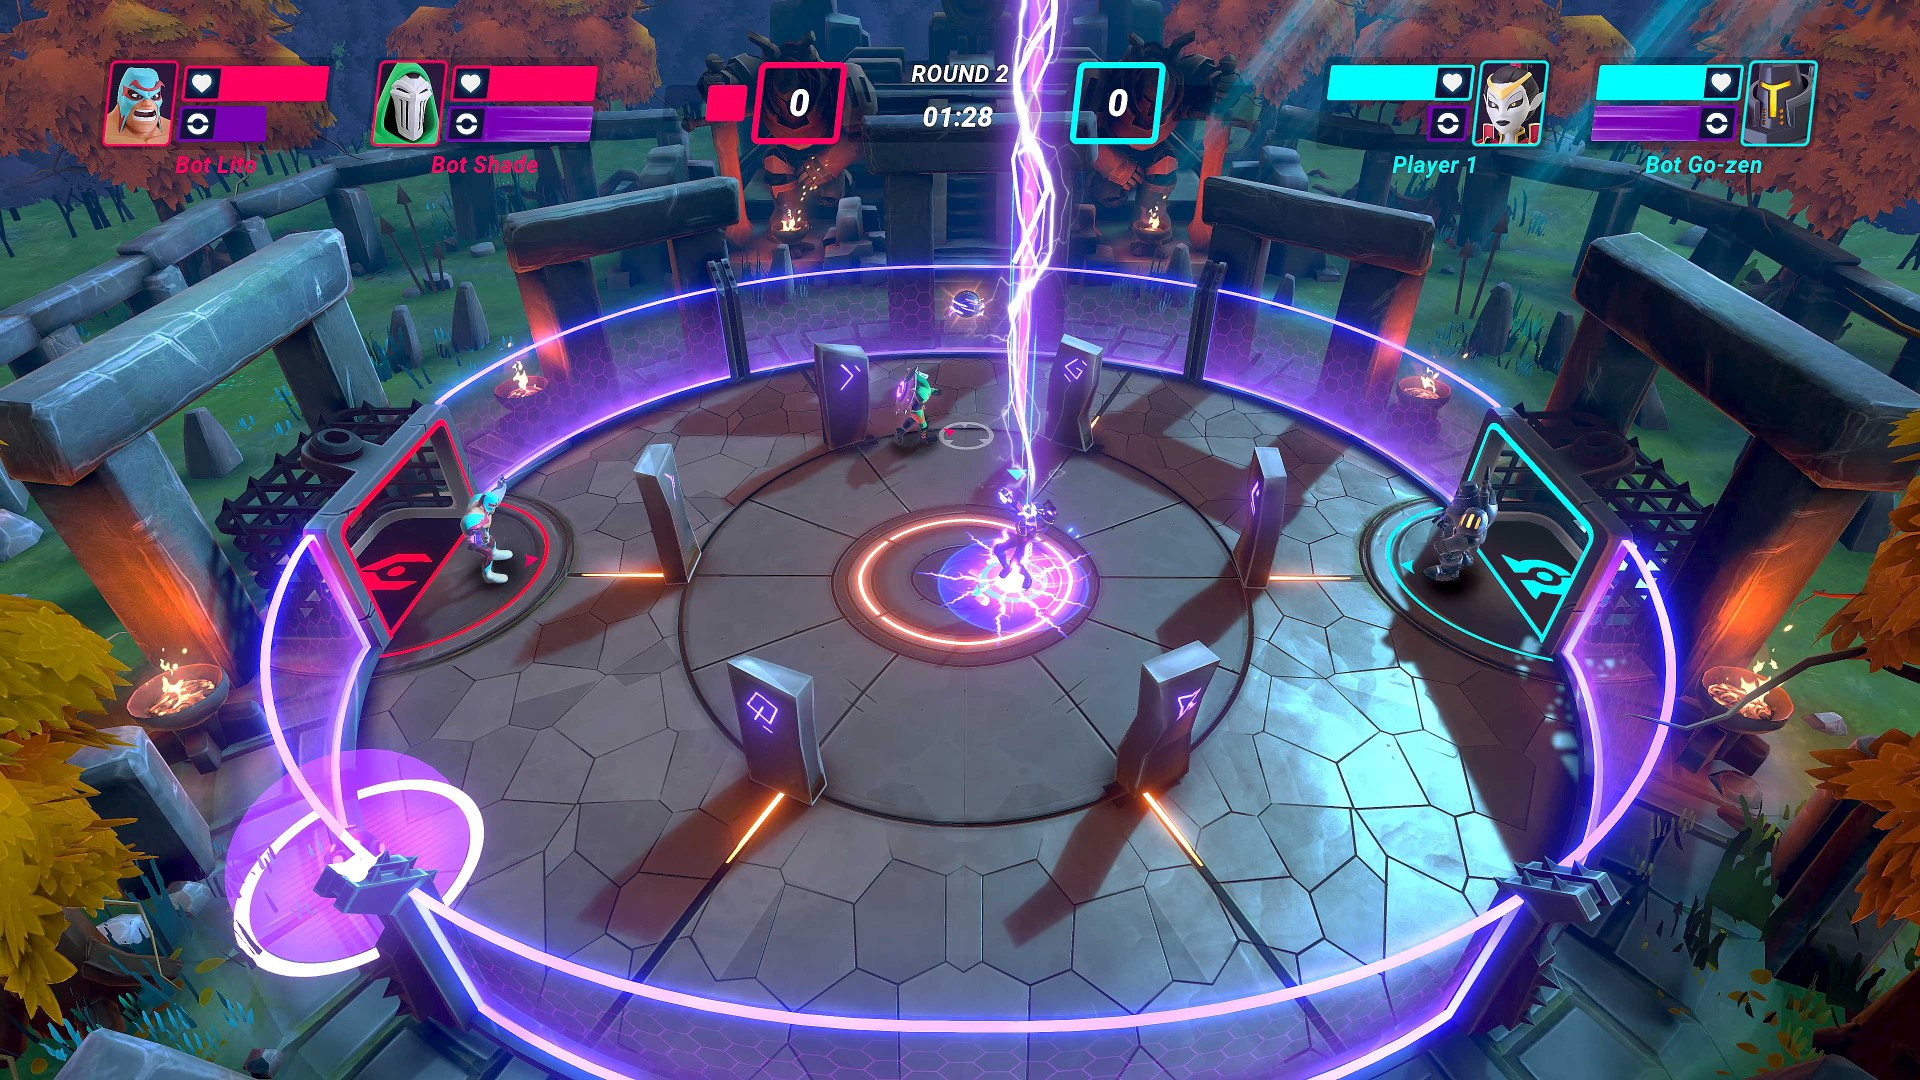 HyperBrawl Tournament: The Multiplayer Sports Brawler is Available Now on Xbox One